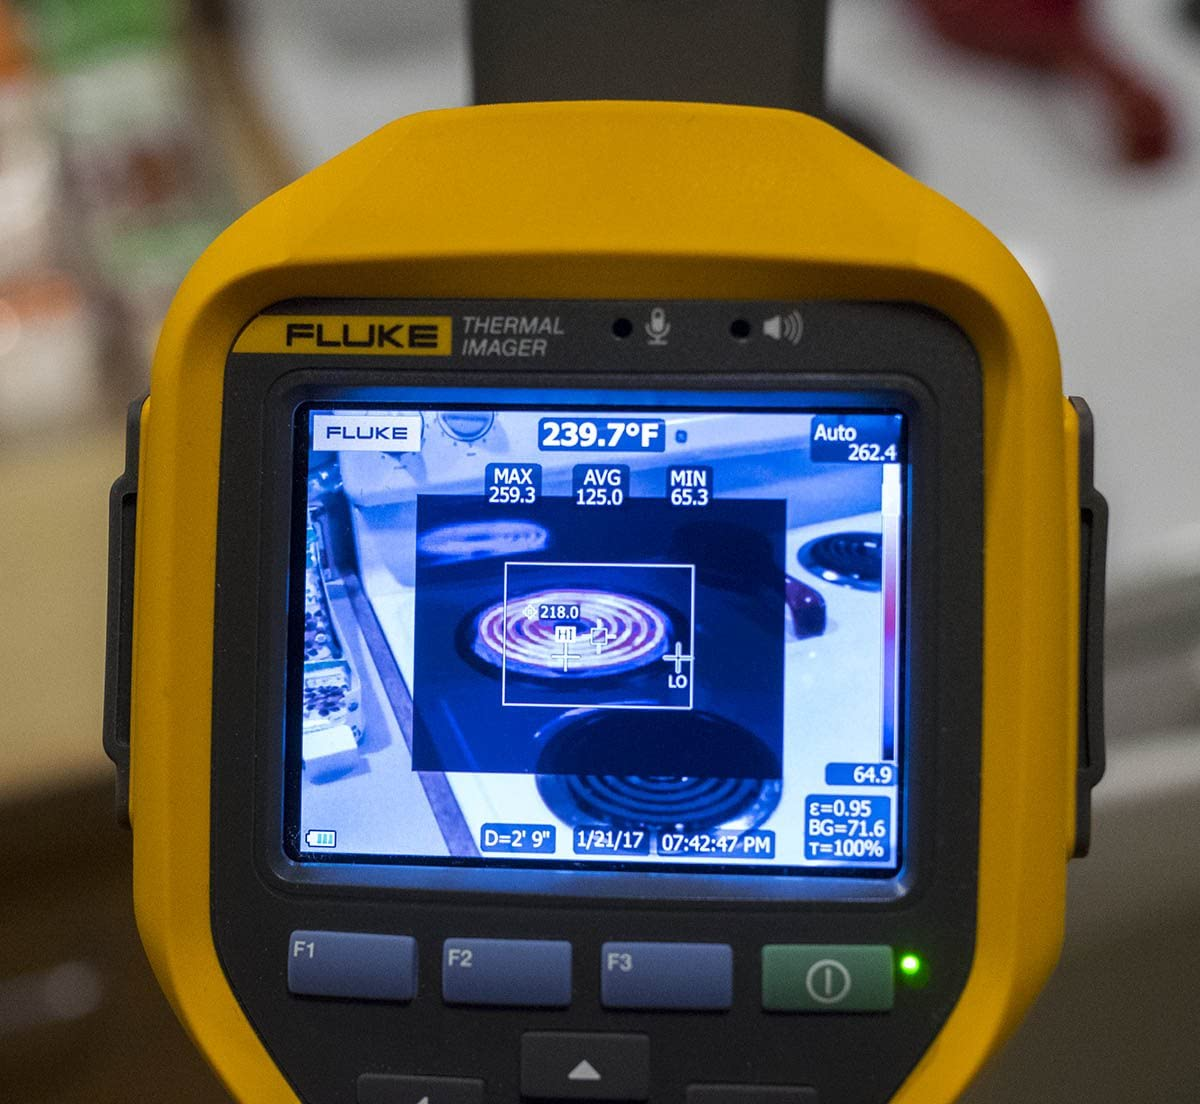 Fluke TI200 60HZ Industrial Thermal Infrared Camera with LaserSharp Auto Focus, IR-Fusion AutoBlend, Fluke Connect Wireless, 200×150 Resolution